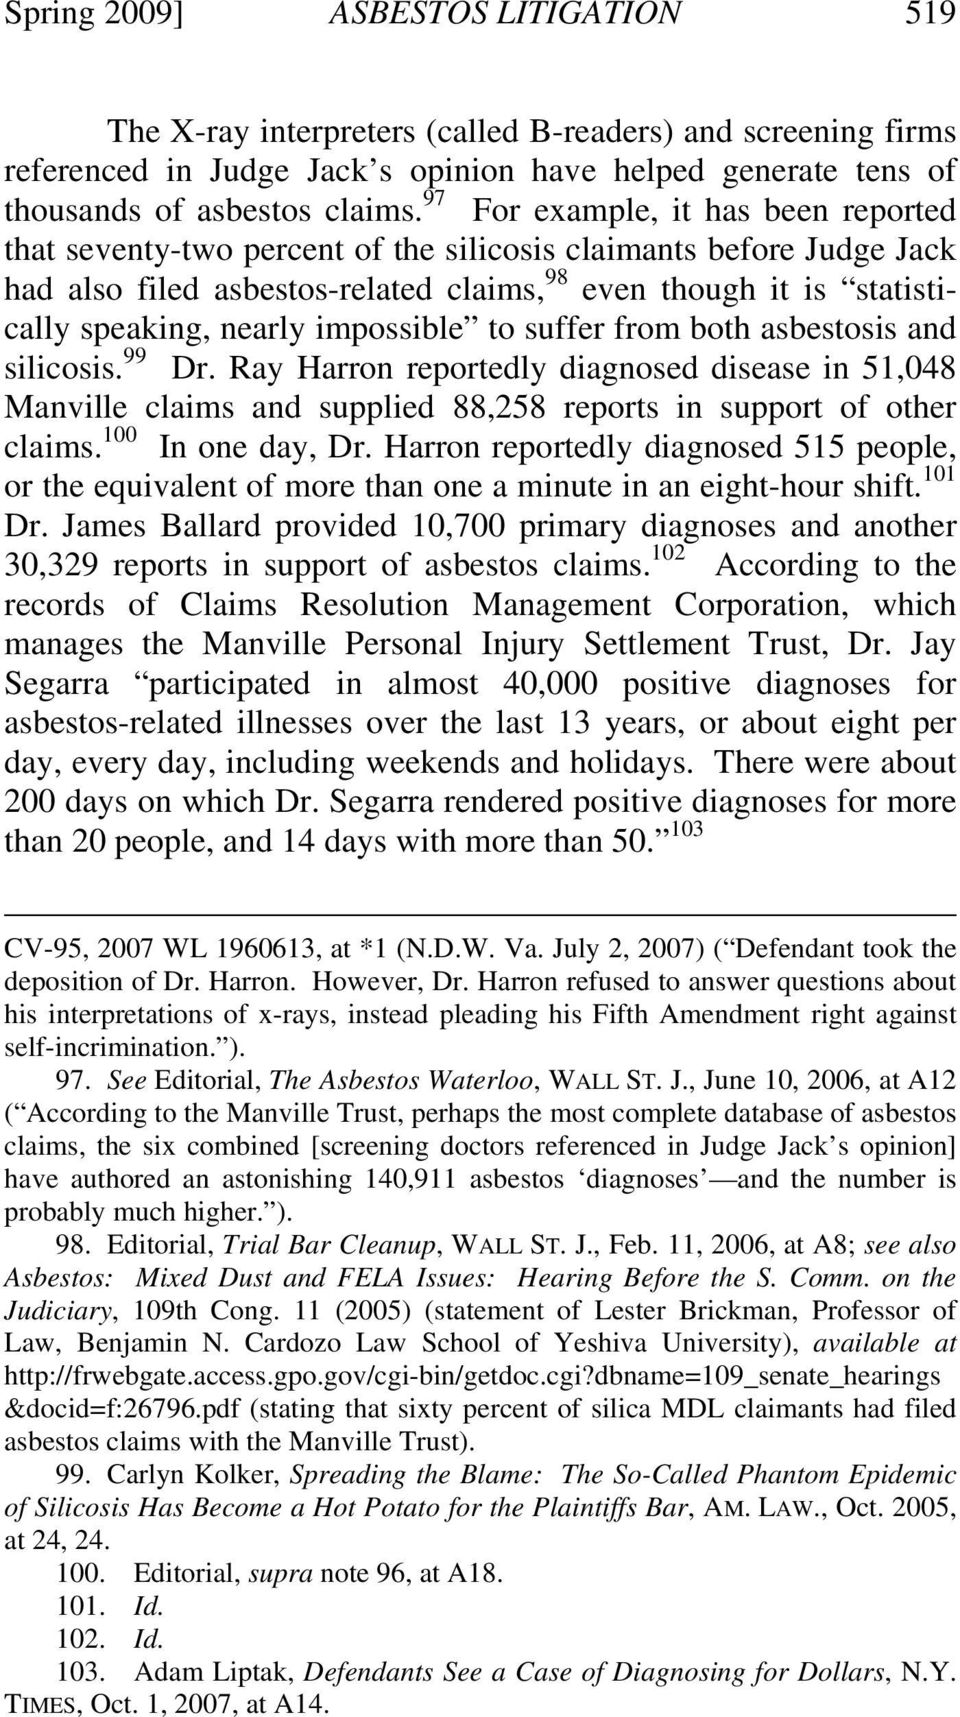 impossible to suffer from both asbestosis and silicosis. 99 Dr. Ray Harron reportedly diagnosed disease in 51,048 Manville claims and supplied 88,258 reports in support of other claims.